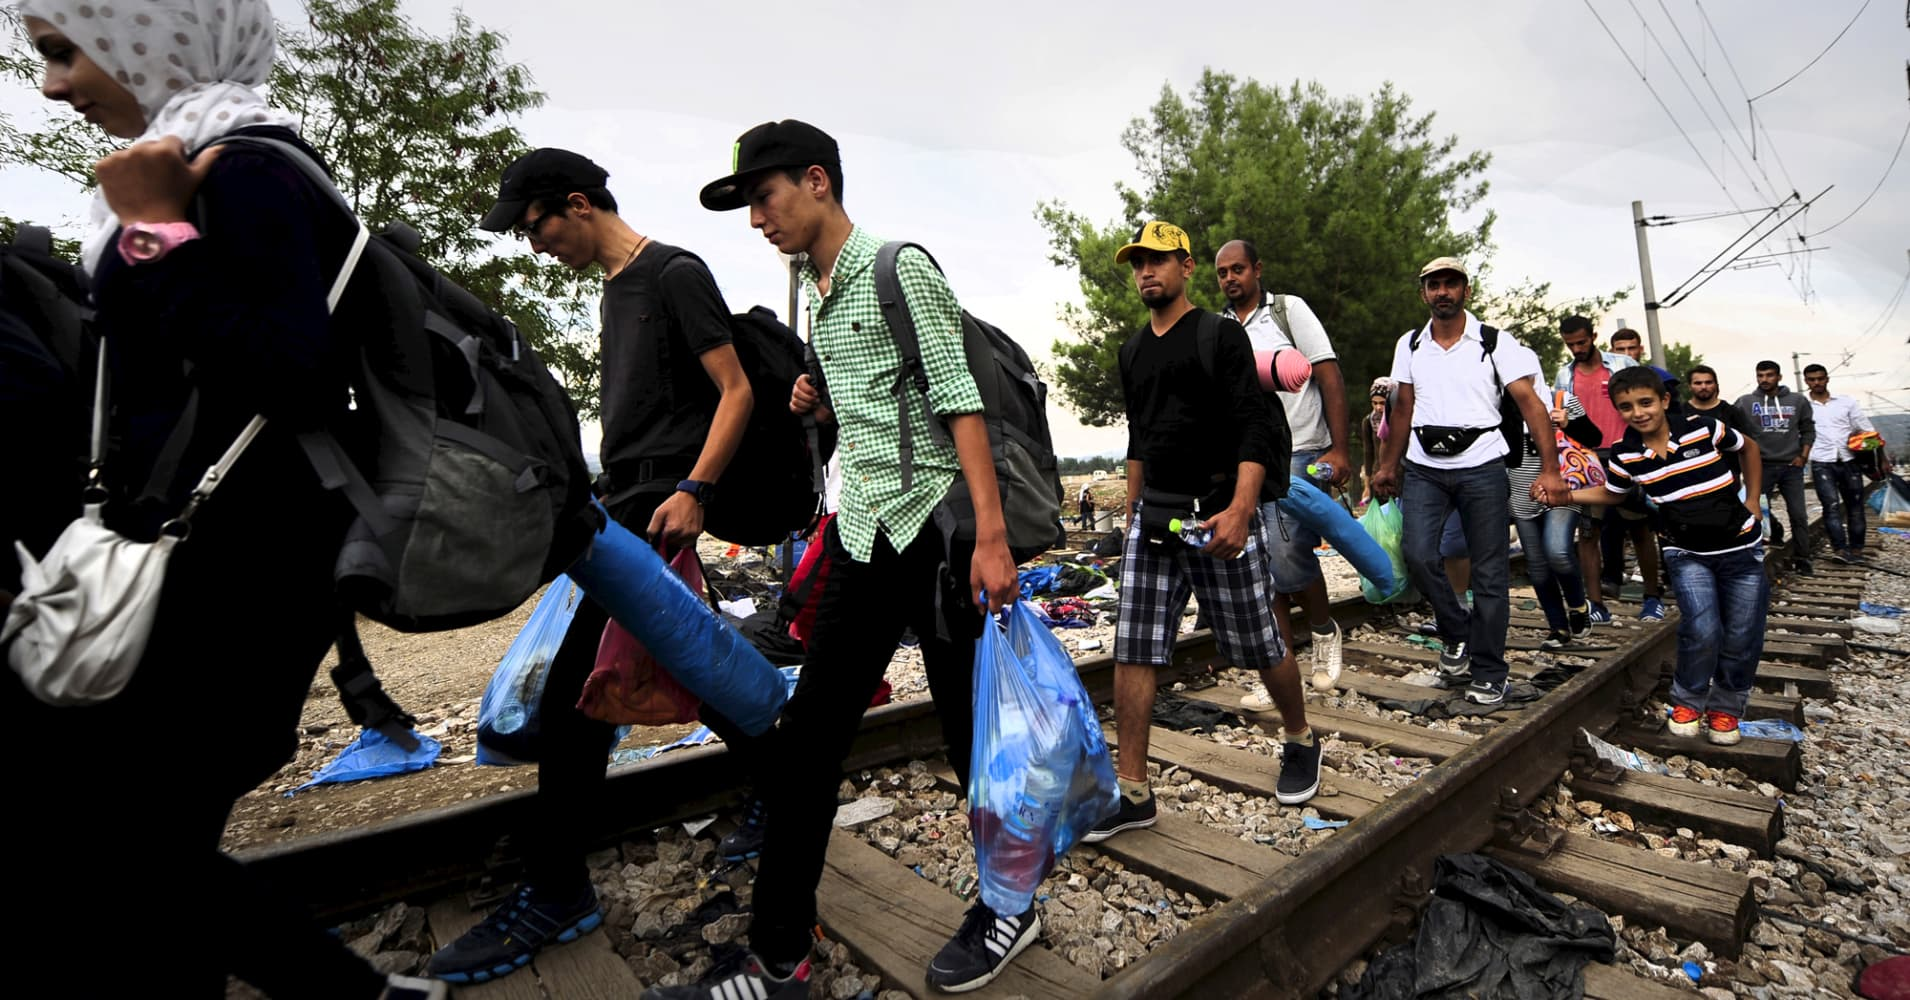 European leaders are proposing collaborative measures to counter overwhelming migration